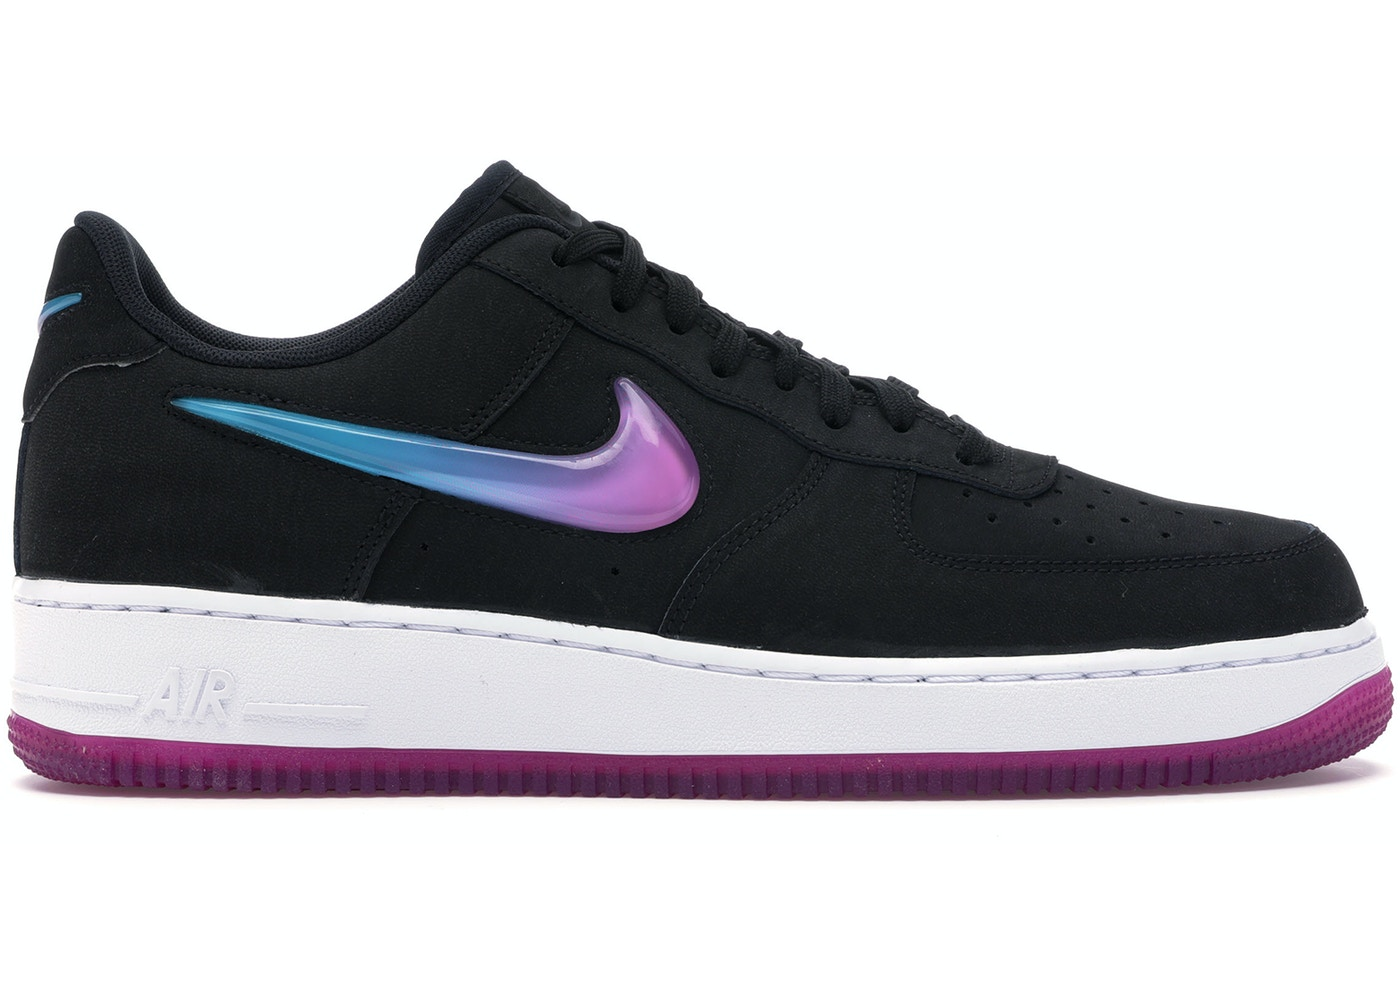 Nike Air Force 1 Low Jelly Jewel Black At4143 001